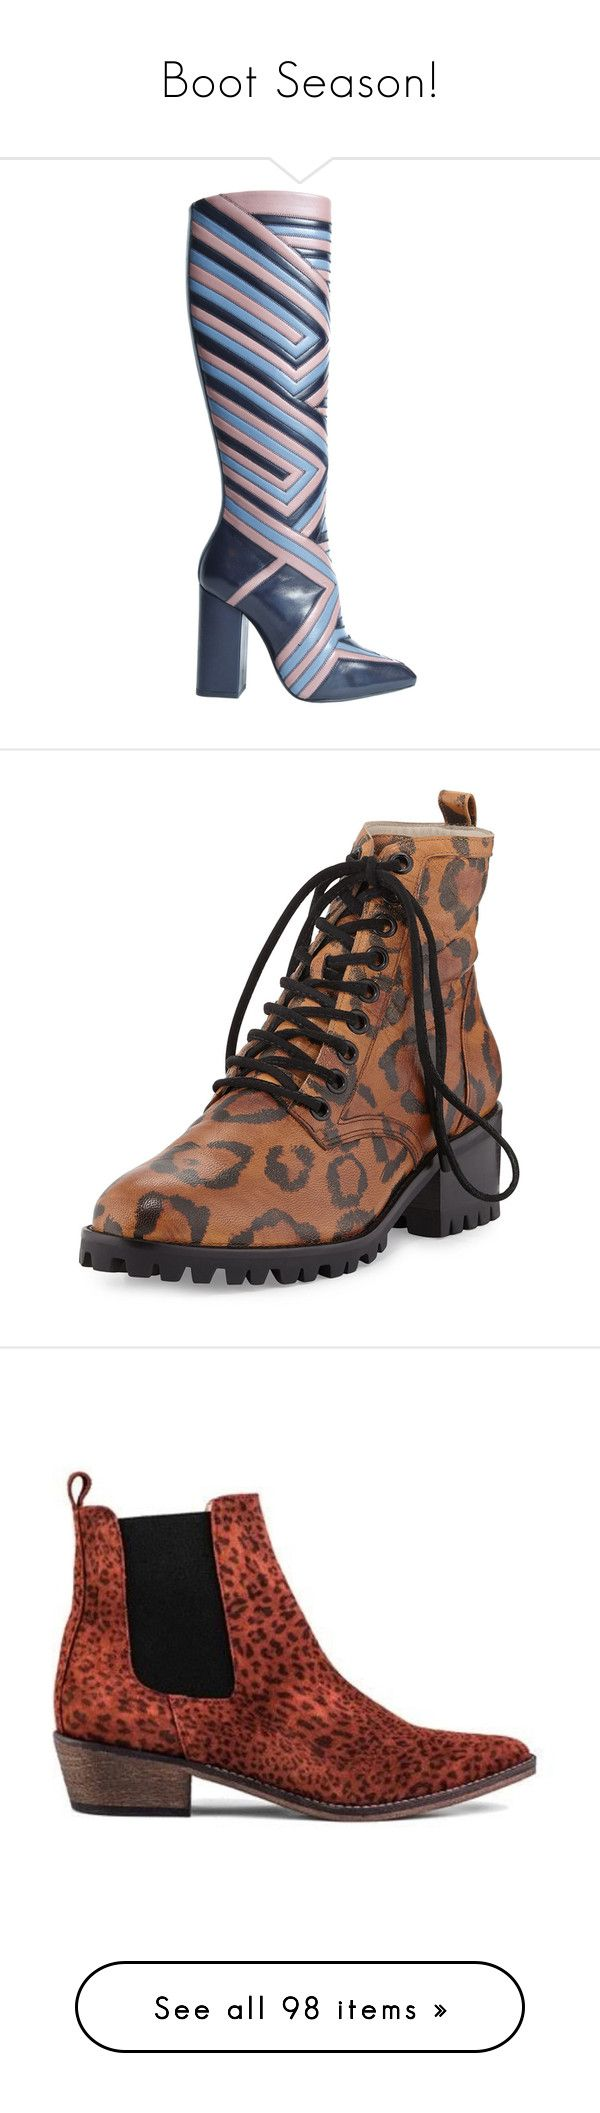 """Boot Season!"" by lindaweldon ❤ liked on Polyvore featuring shoes, boots, ankle booties, ankle boots, leopard, lace up bootie, lace up ankle boots, combat boots, leopard print booties and military boots"